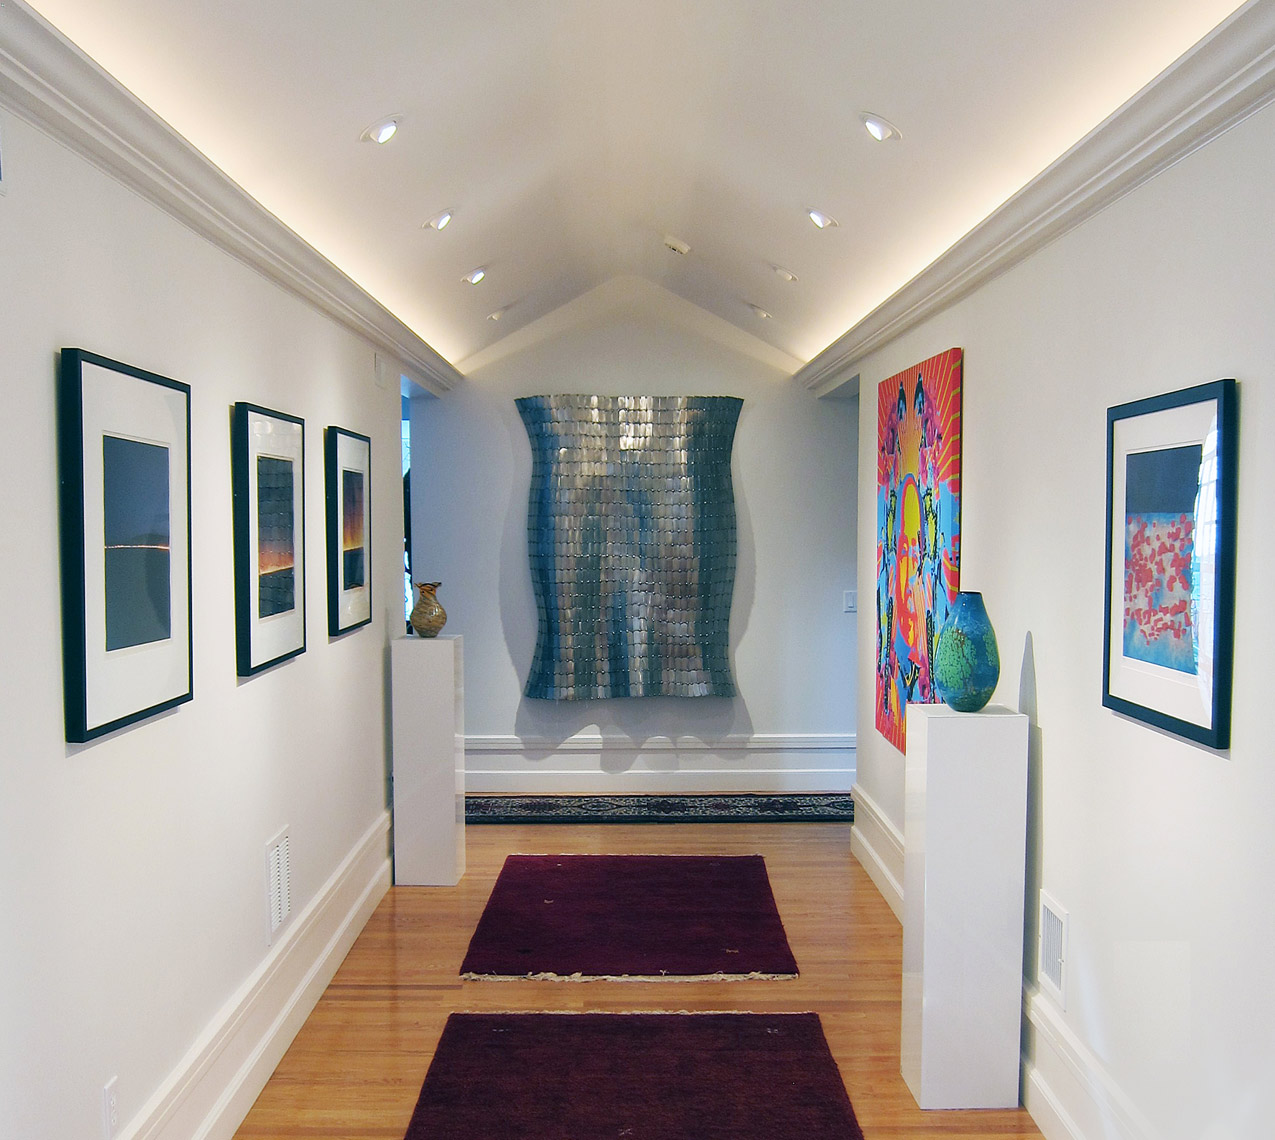 New-Undulations-Entry-Hall